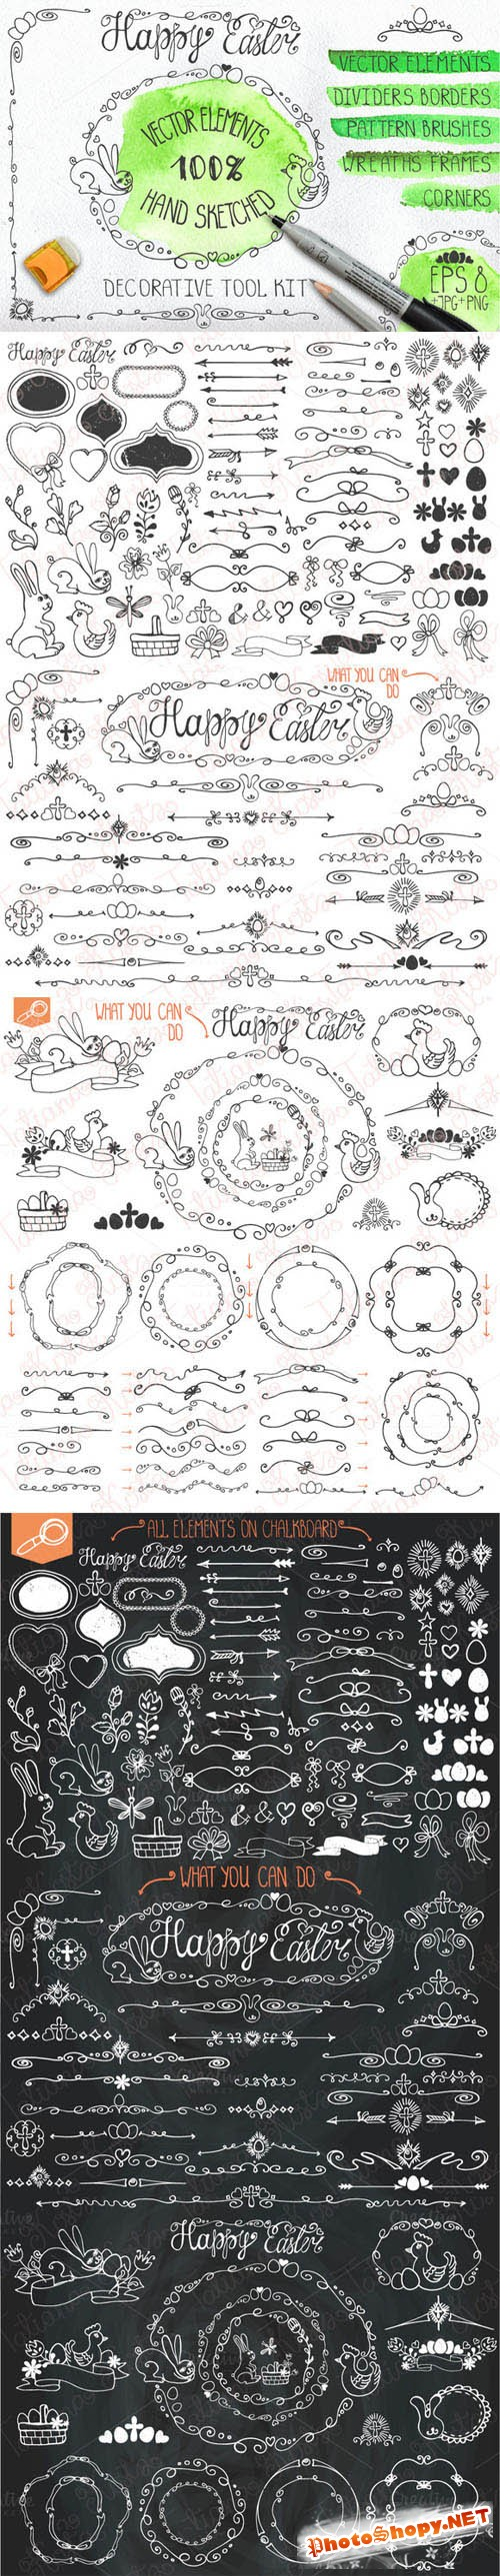 Easter hand drawing decor set 01 - Creativemarket 224932